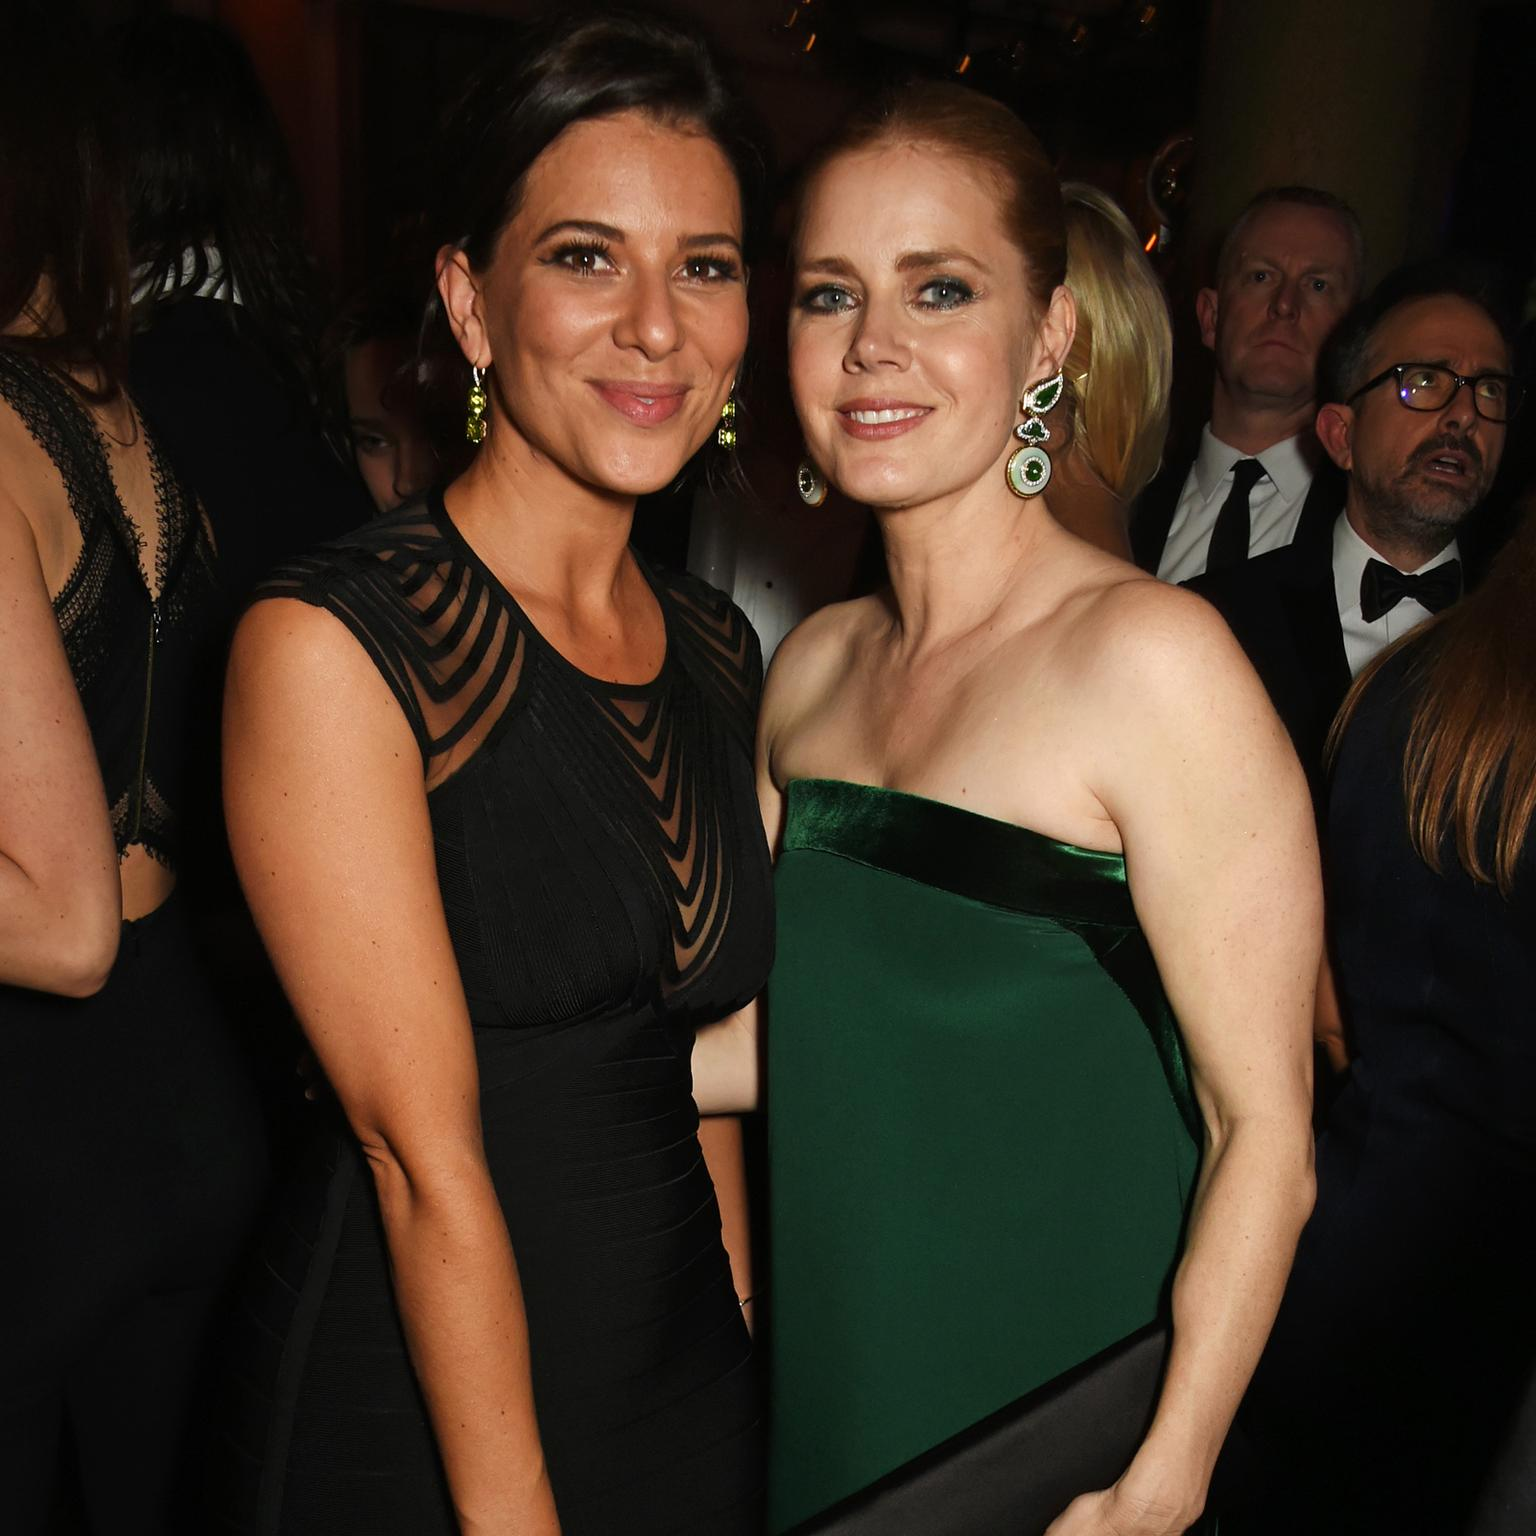 Kat Florence and Amy Adams at the BAFTAS 2017